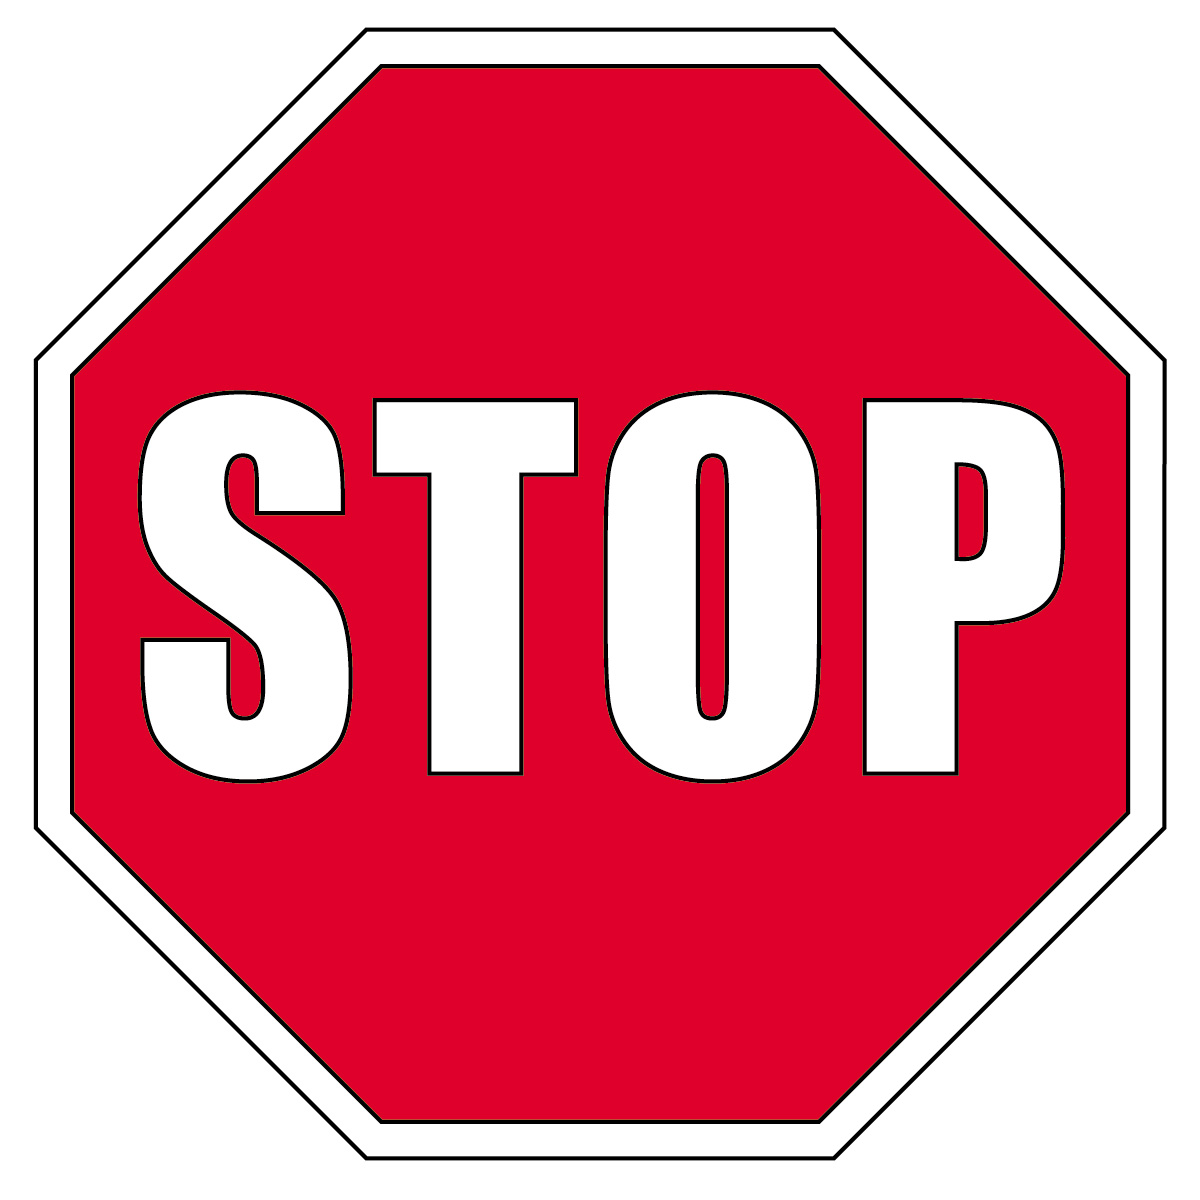 Stop sign clip art microsoft free clipart images 2